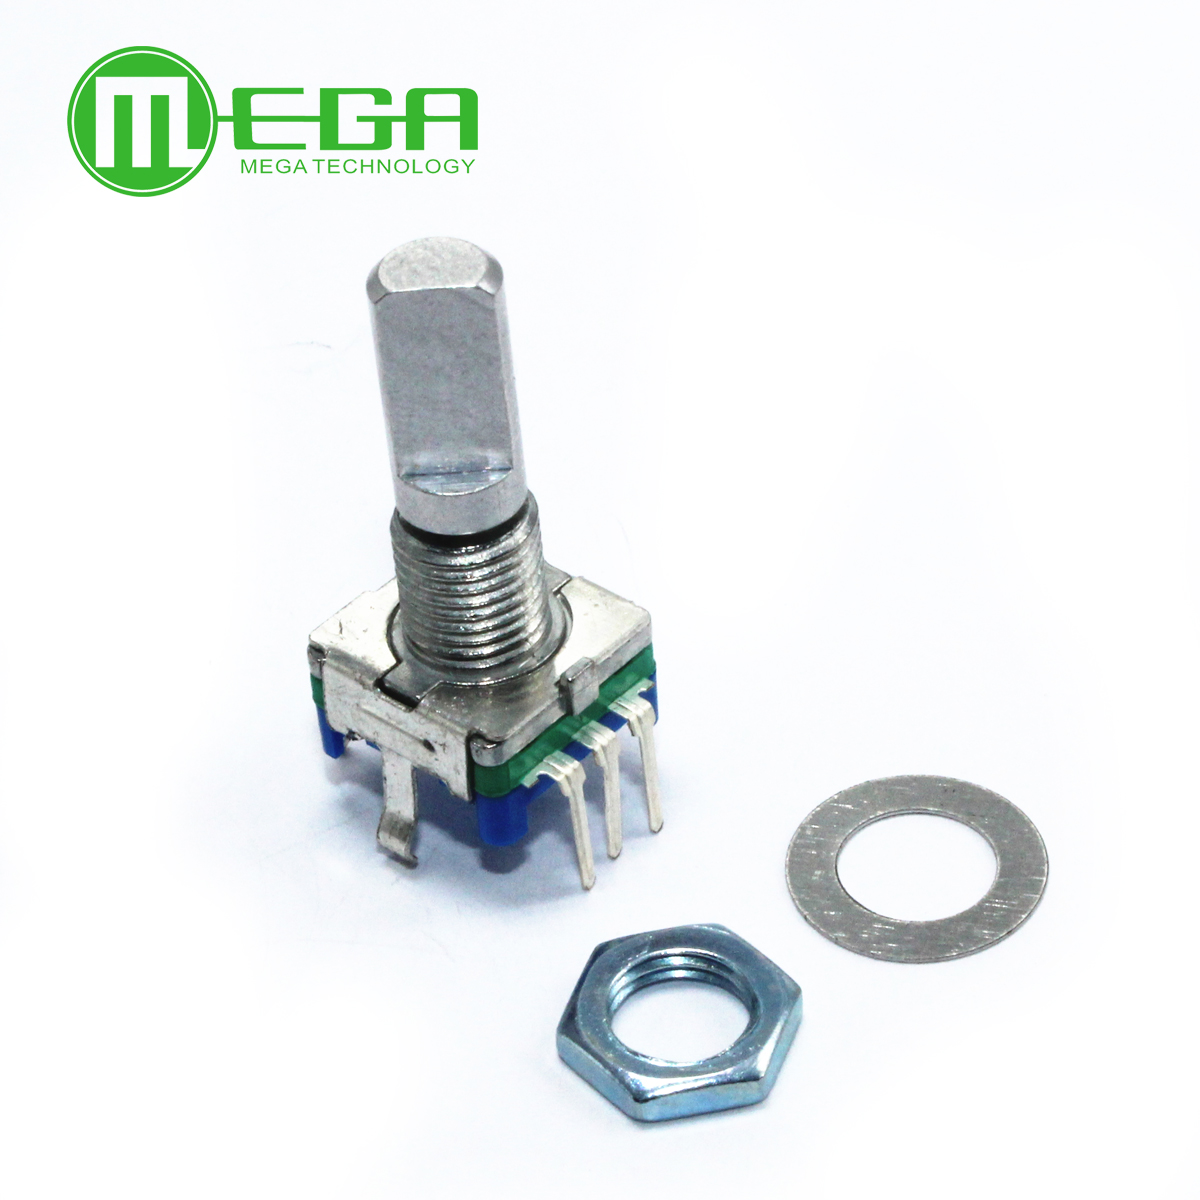 20pcs Rotary encoder,code switch/EC11/digital potentiometer,with switch,5Pin, handle length 20mm,free shipping